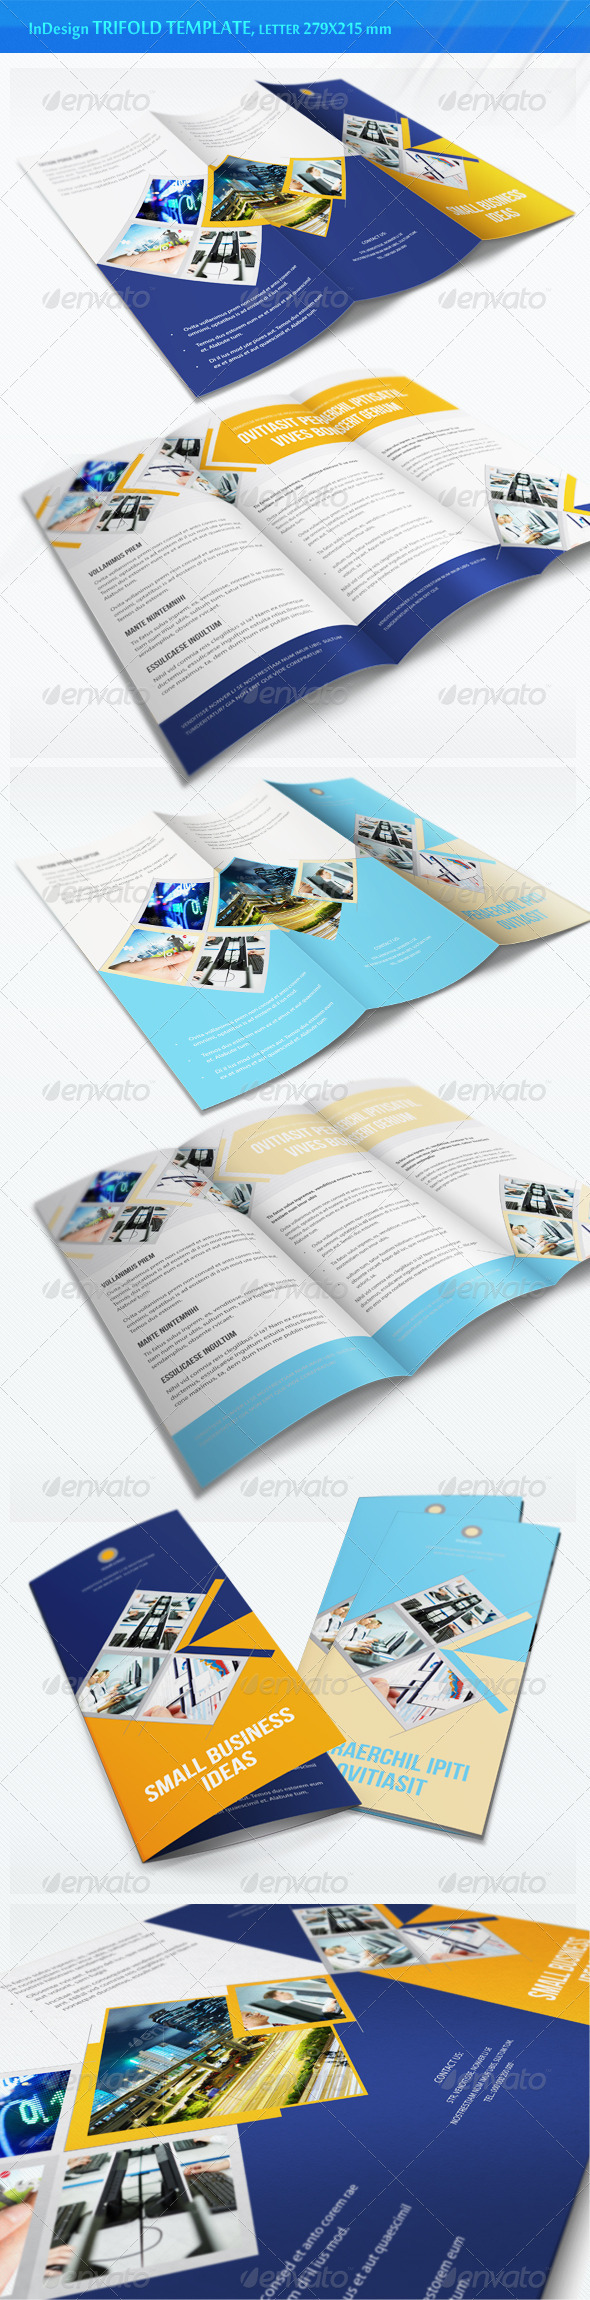 GraphicRiver - Business Trifold Brochure - v5